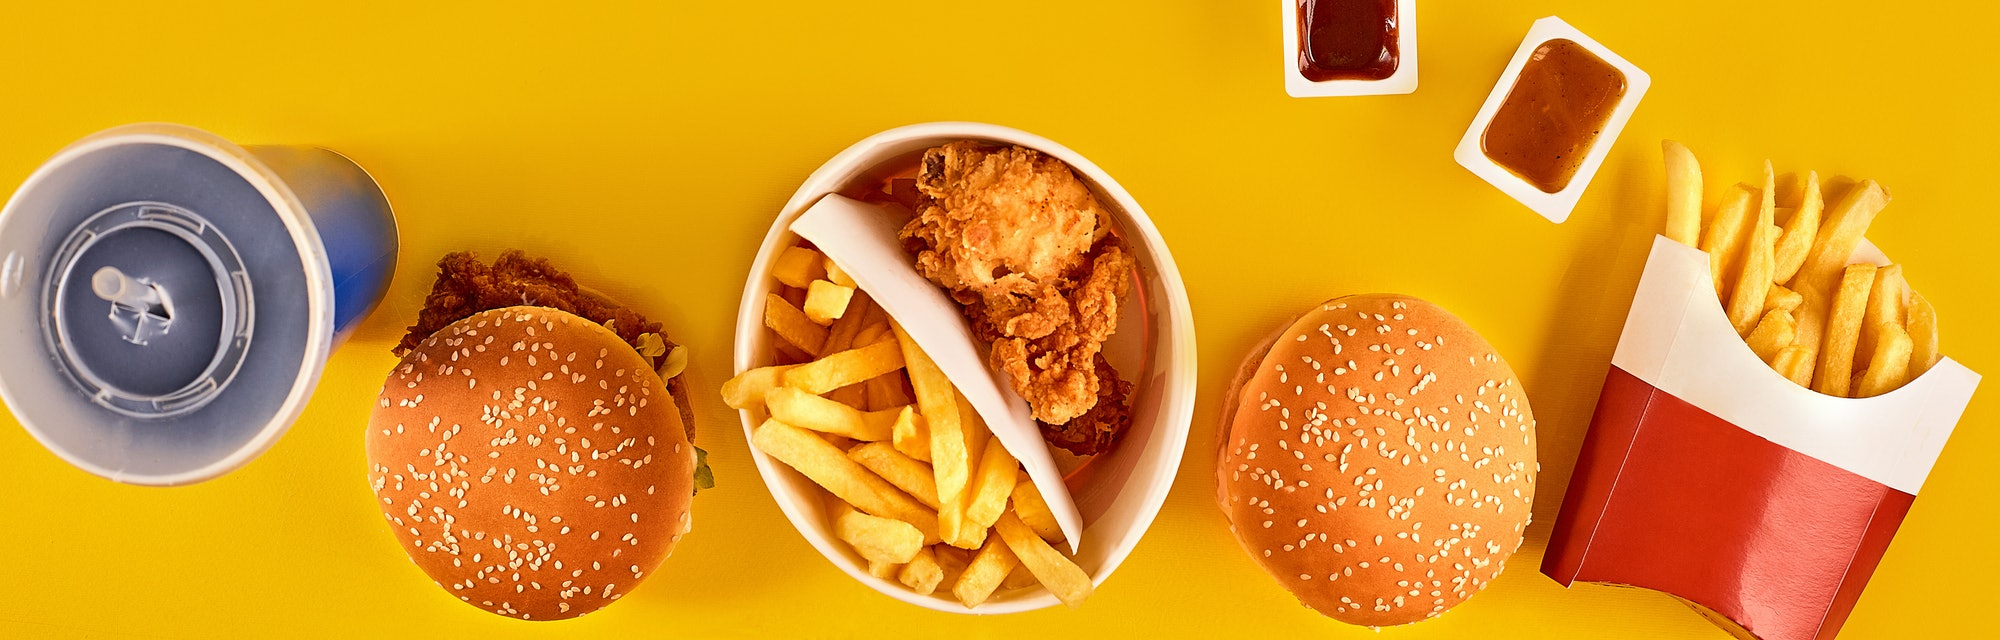 Fast food on a yellow background.